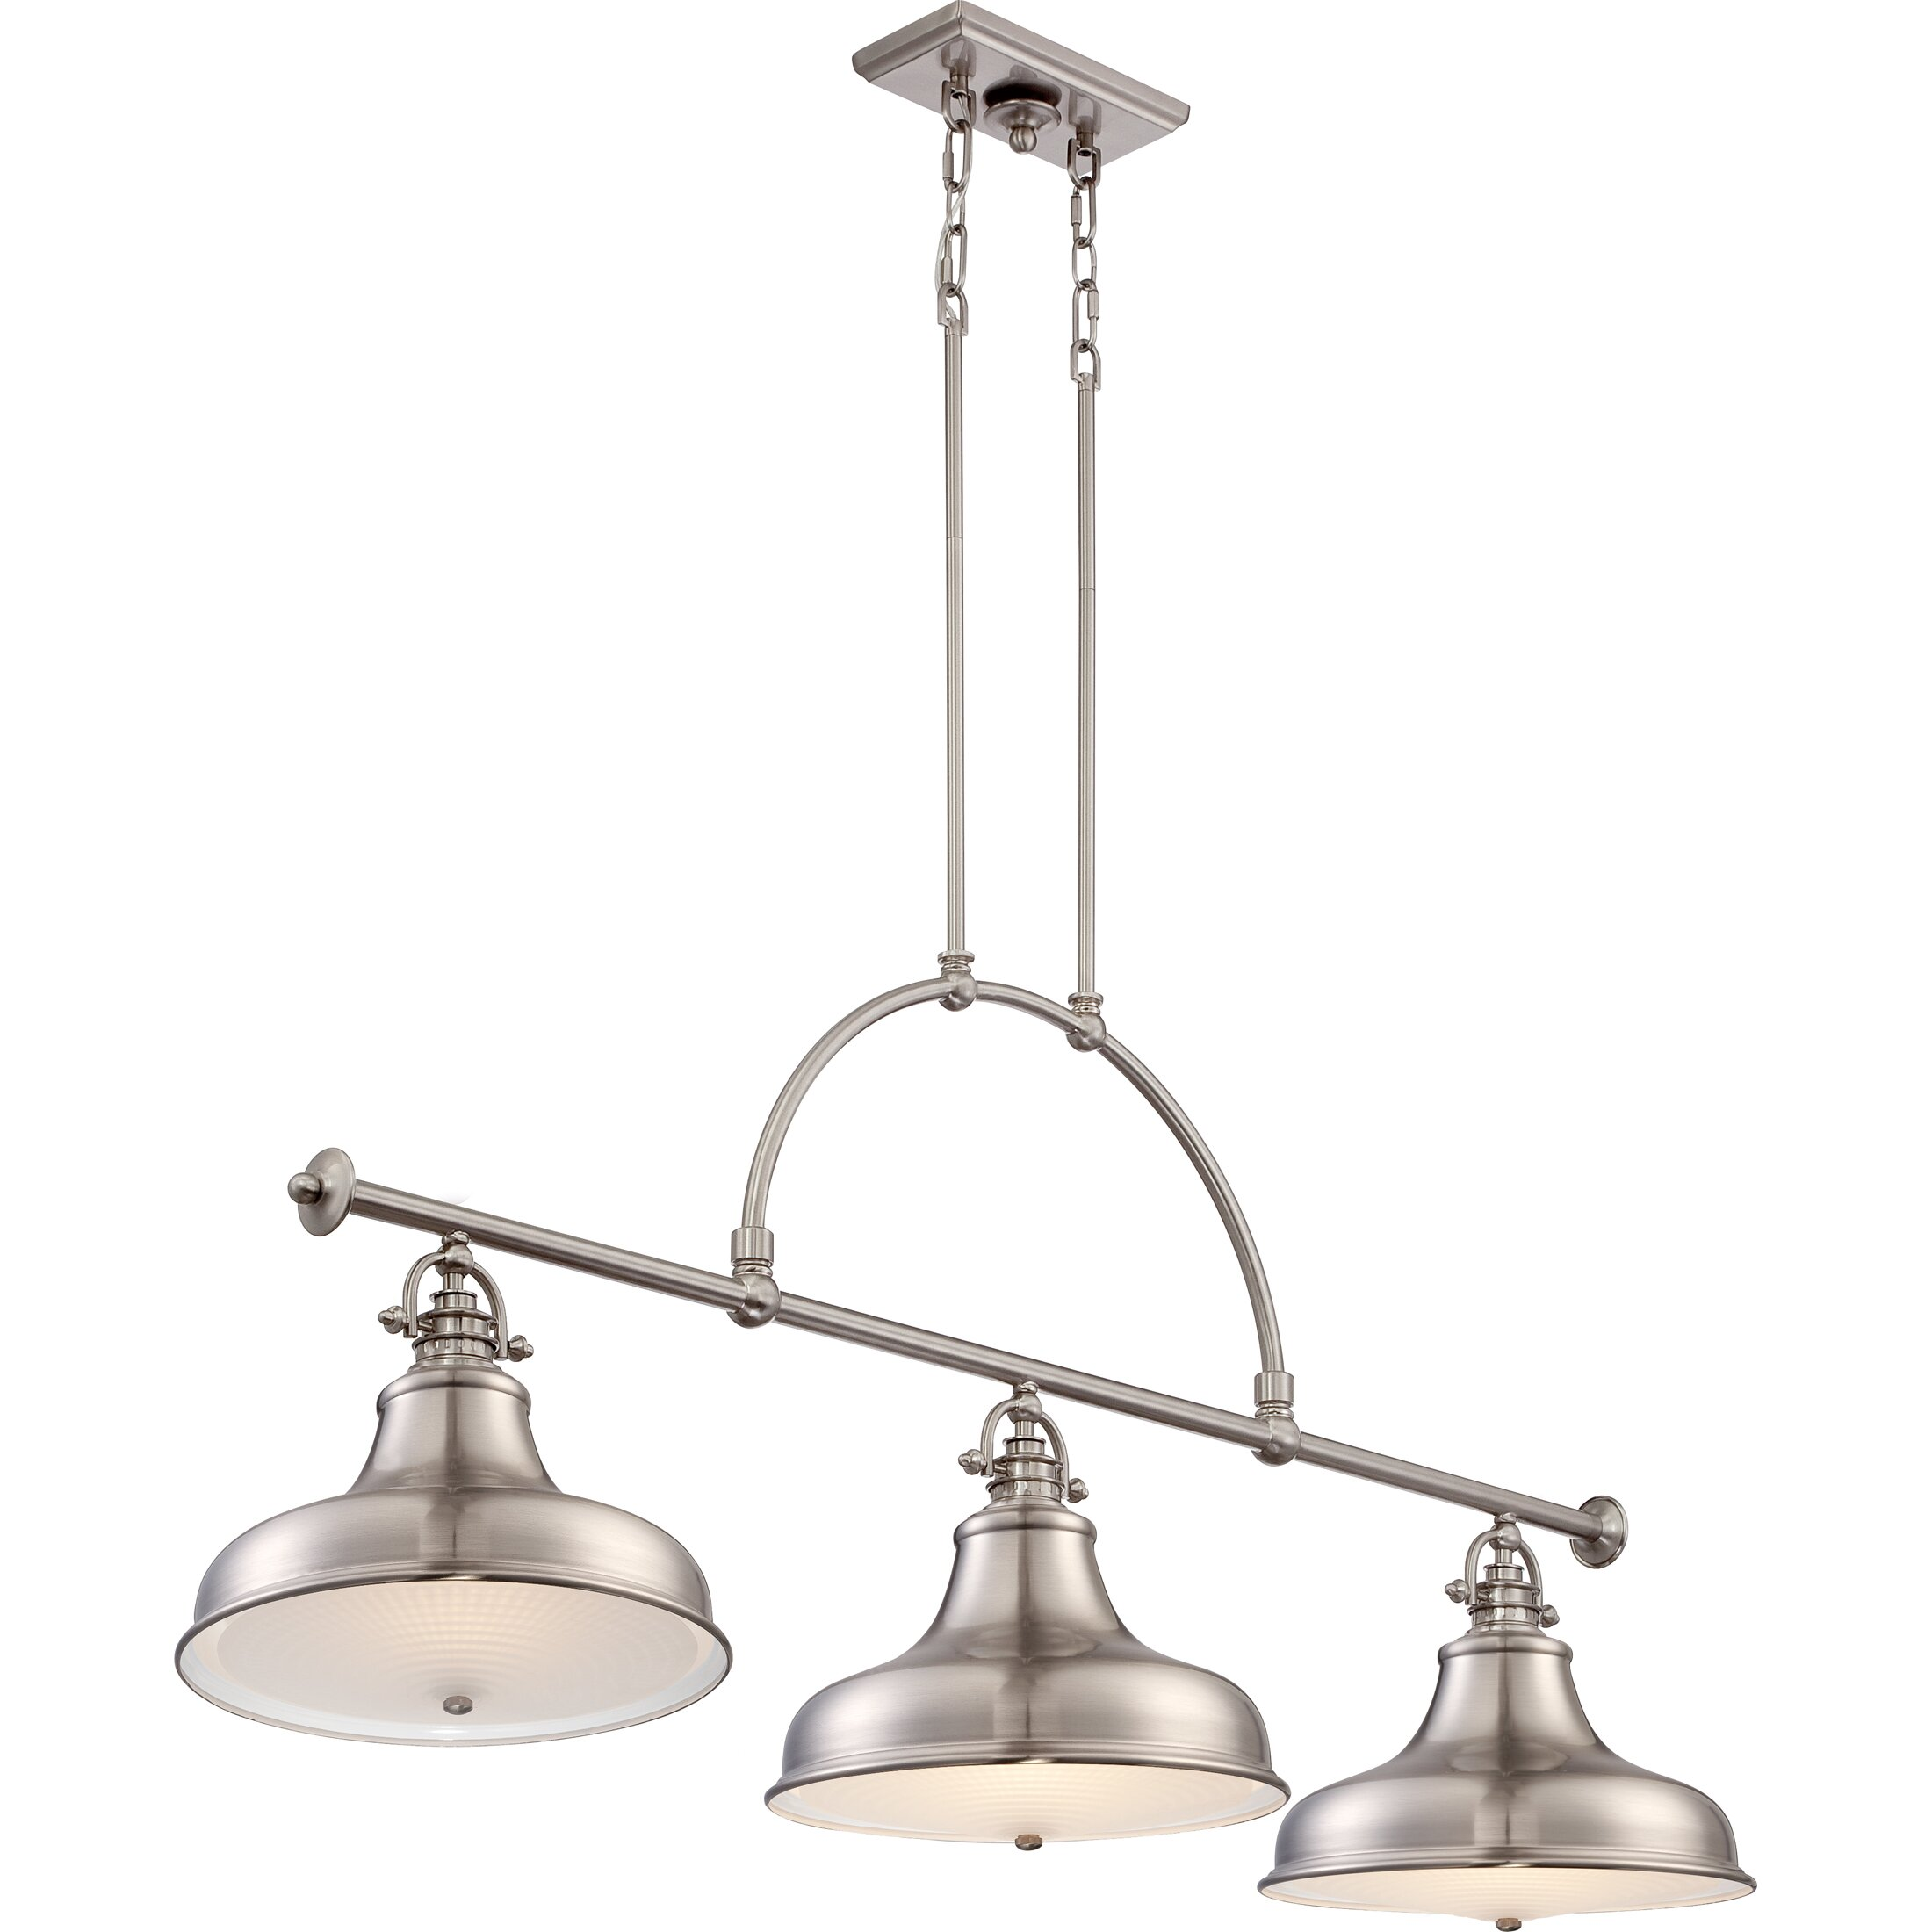 3 light pendant island kitchen lighting trent design cetona 3 light kitchen island pendant 8979